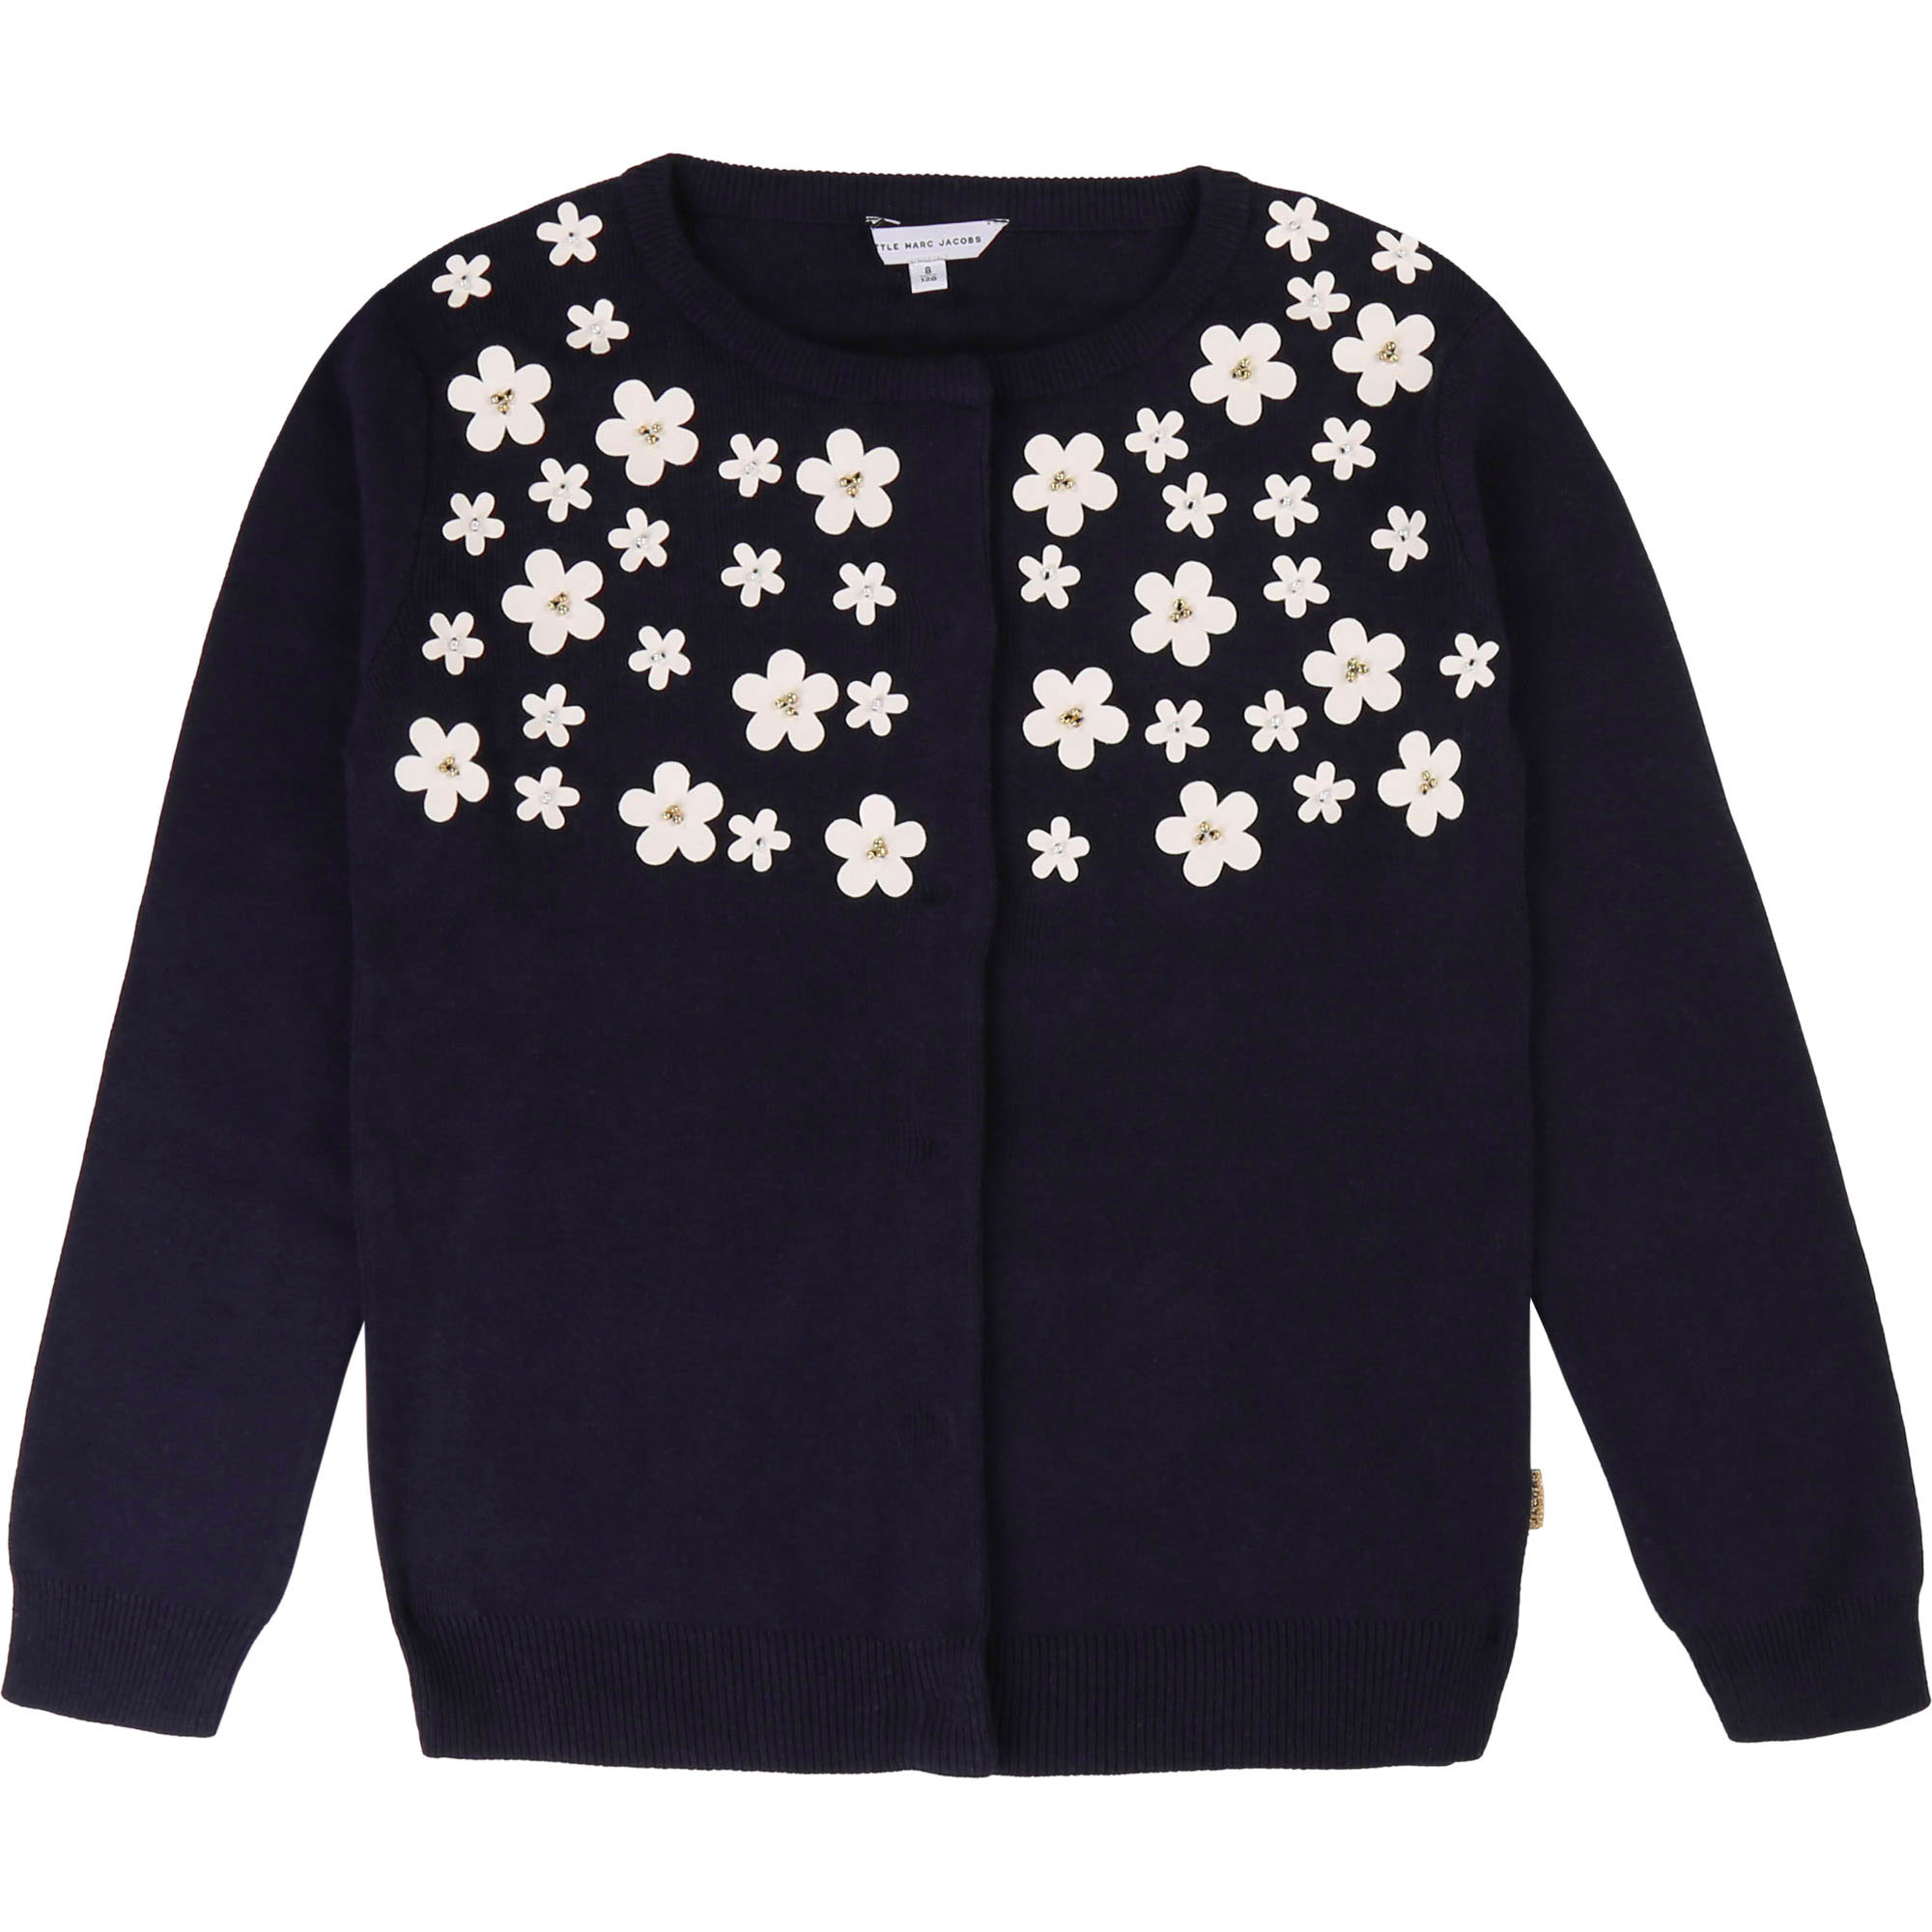 Plain cardigan with flowers. LITTLE MARC JACOBS for GIRL